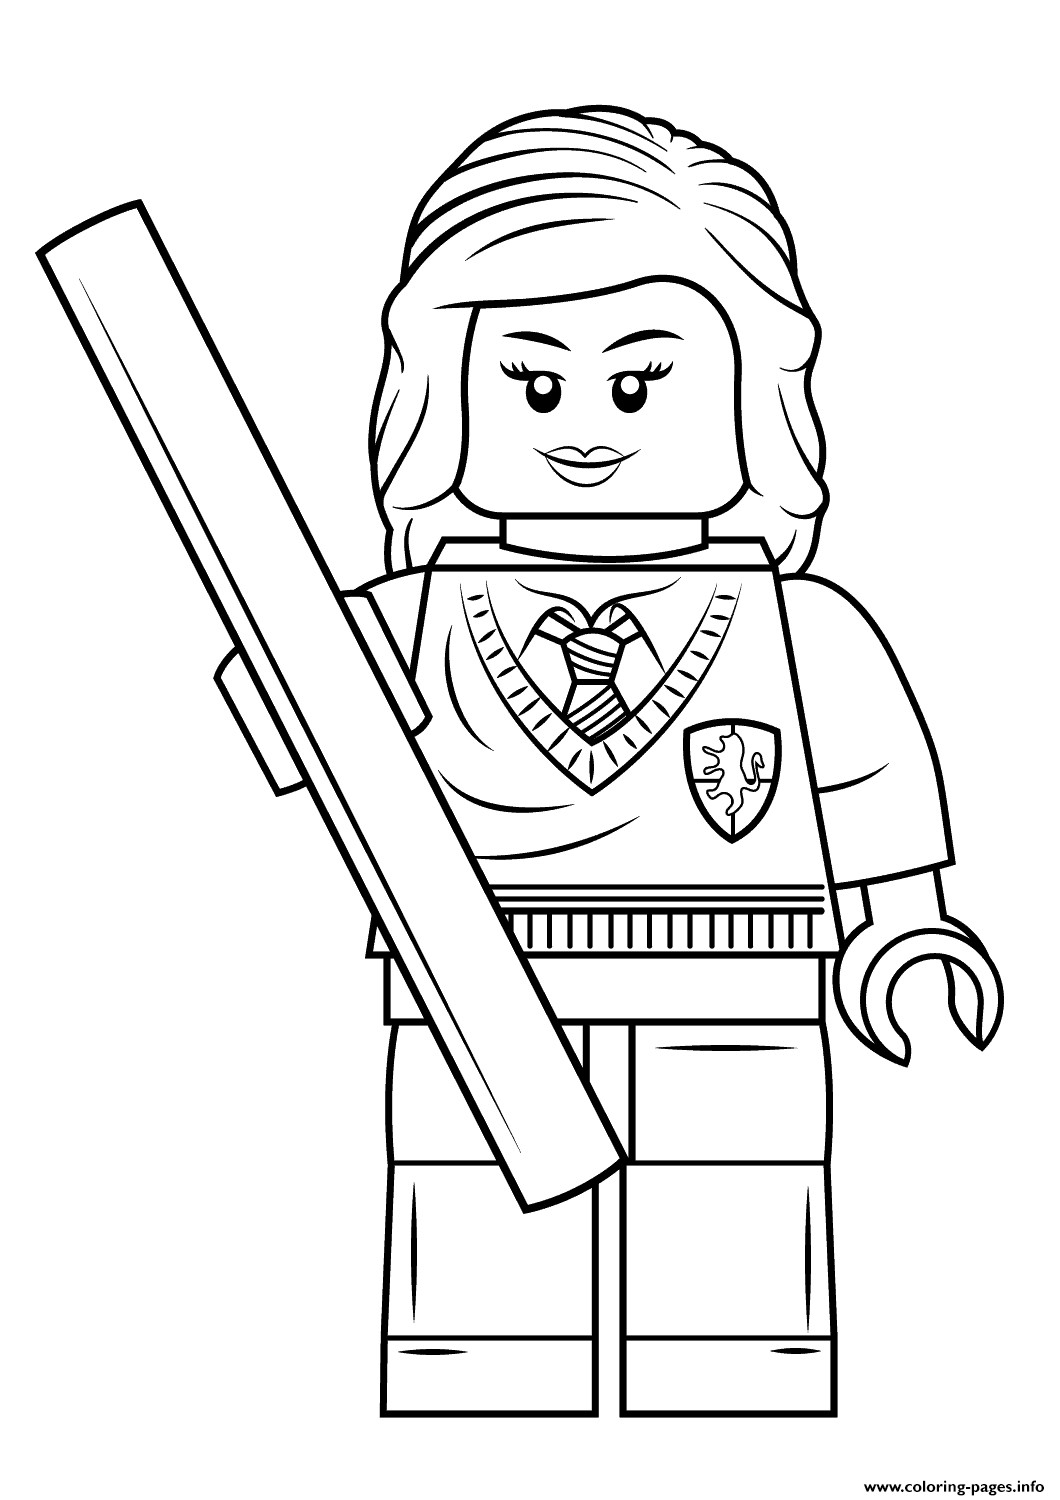 Harry Potter Coloring Pages For Kids At Getcolorings